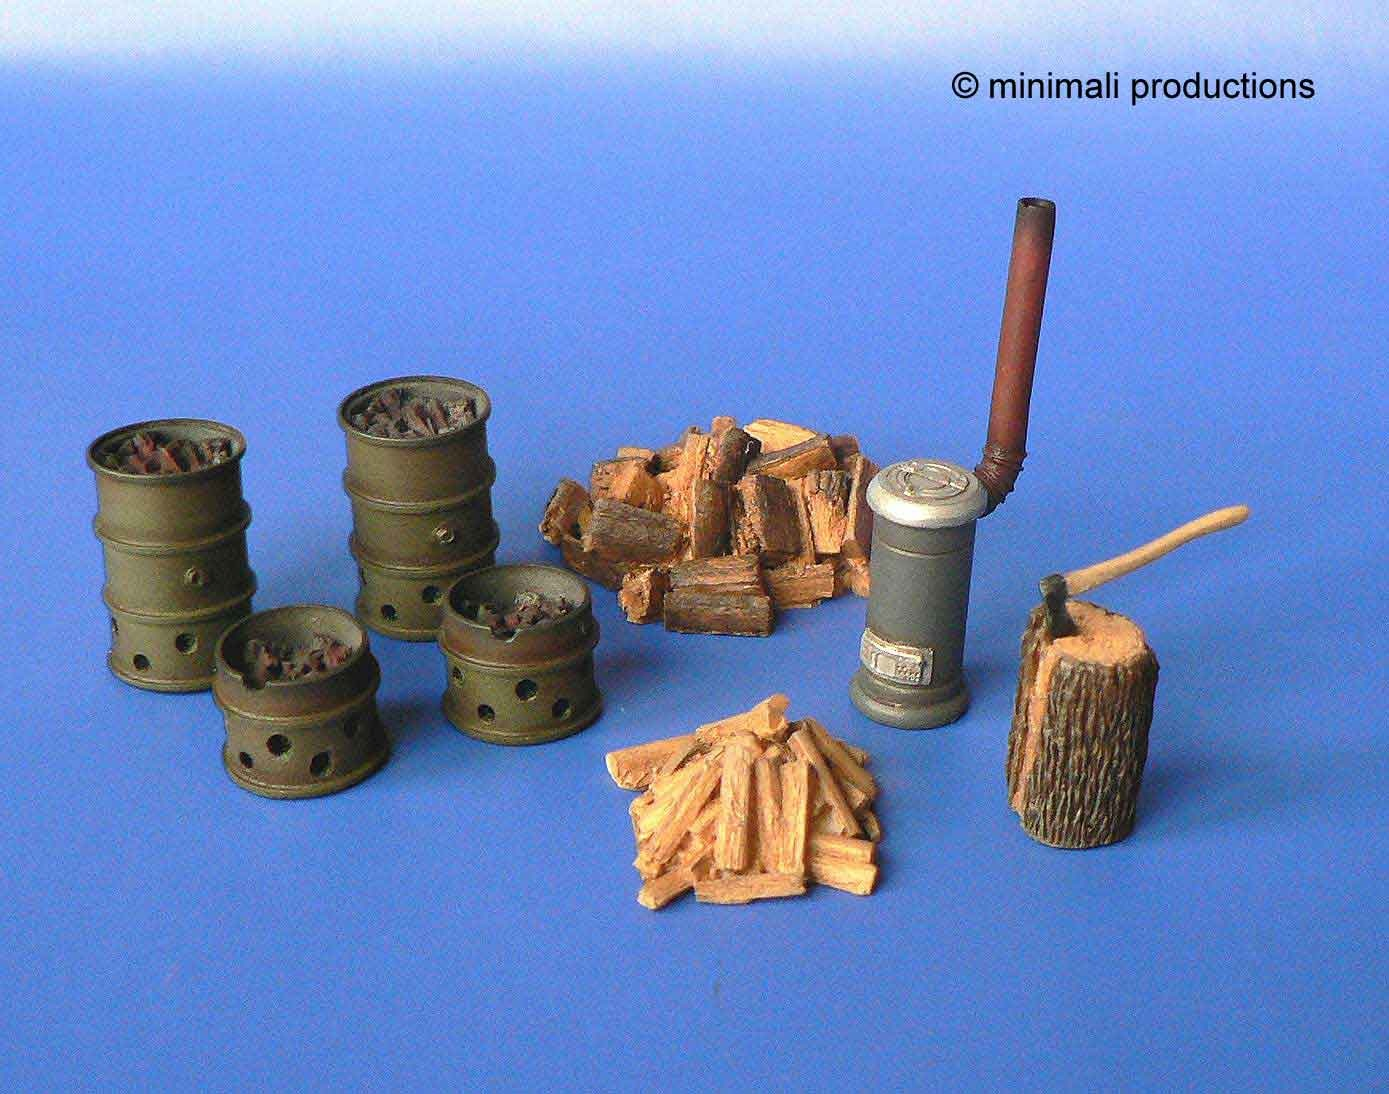 Minimali Productions Stove And Brazier - Scale 1/48 - Minimali Productions - Mii 027